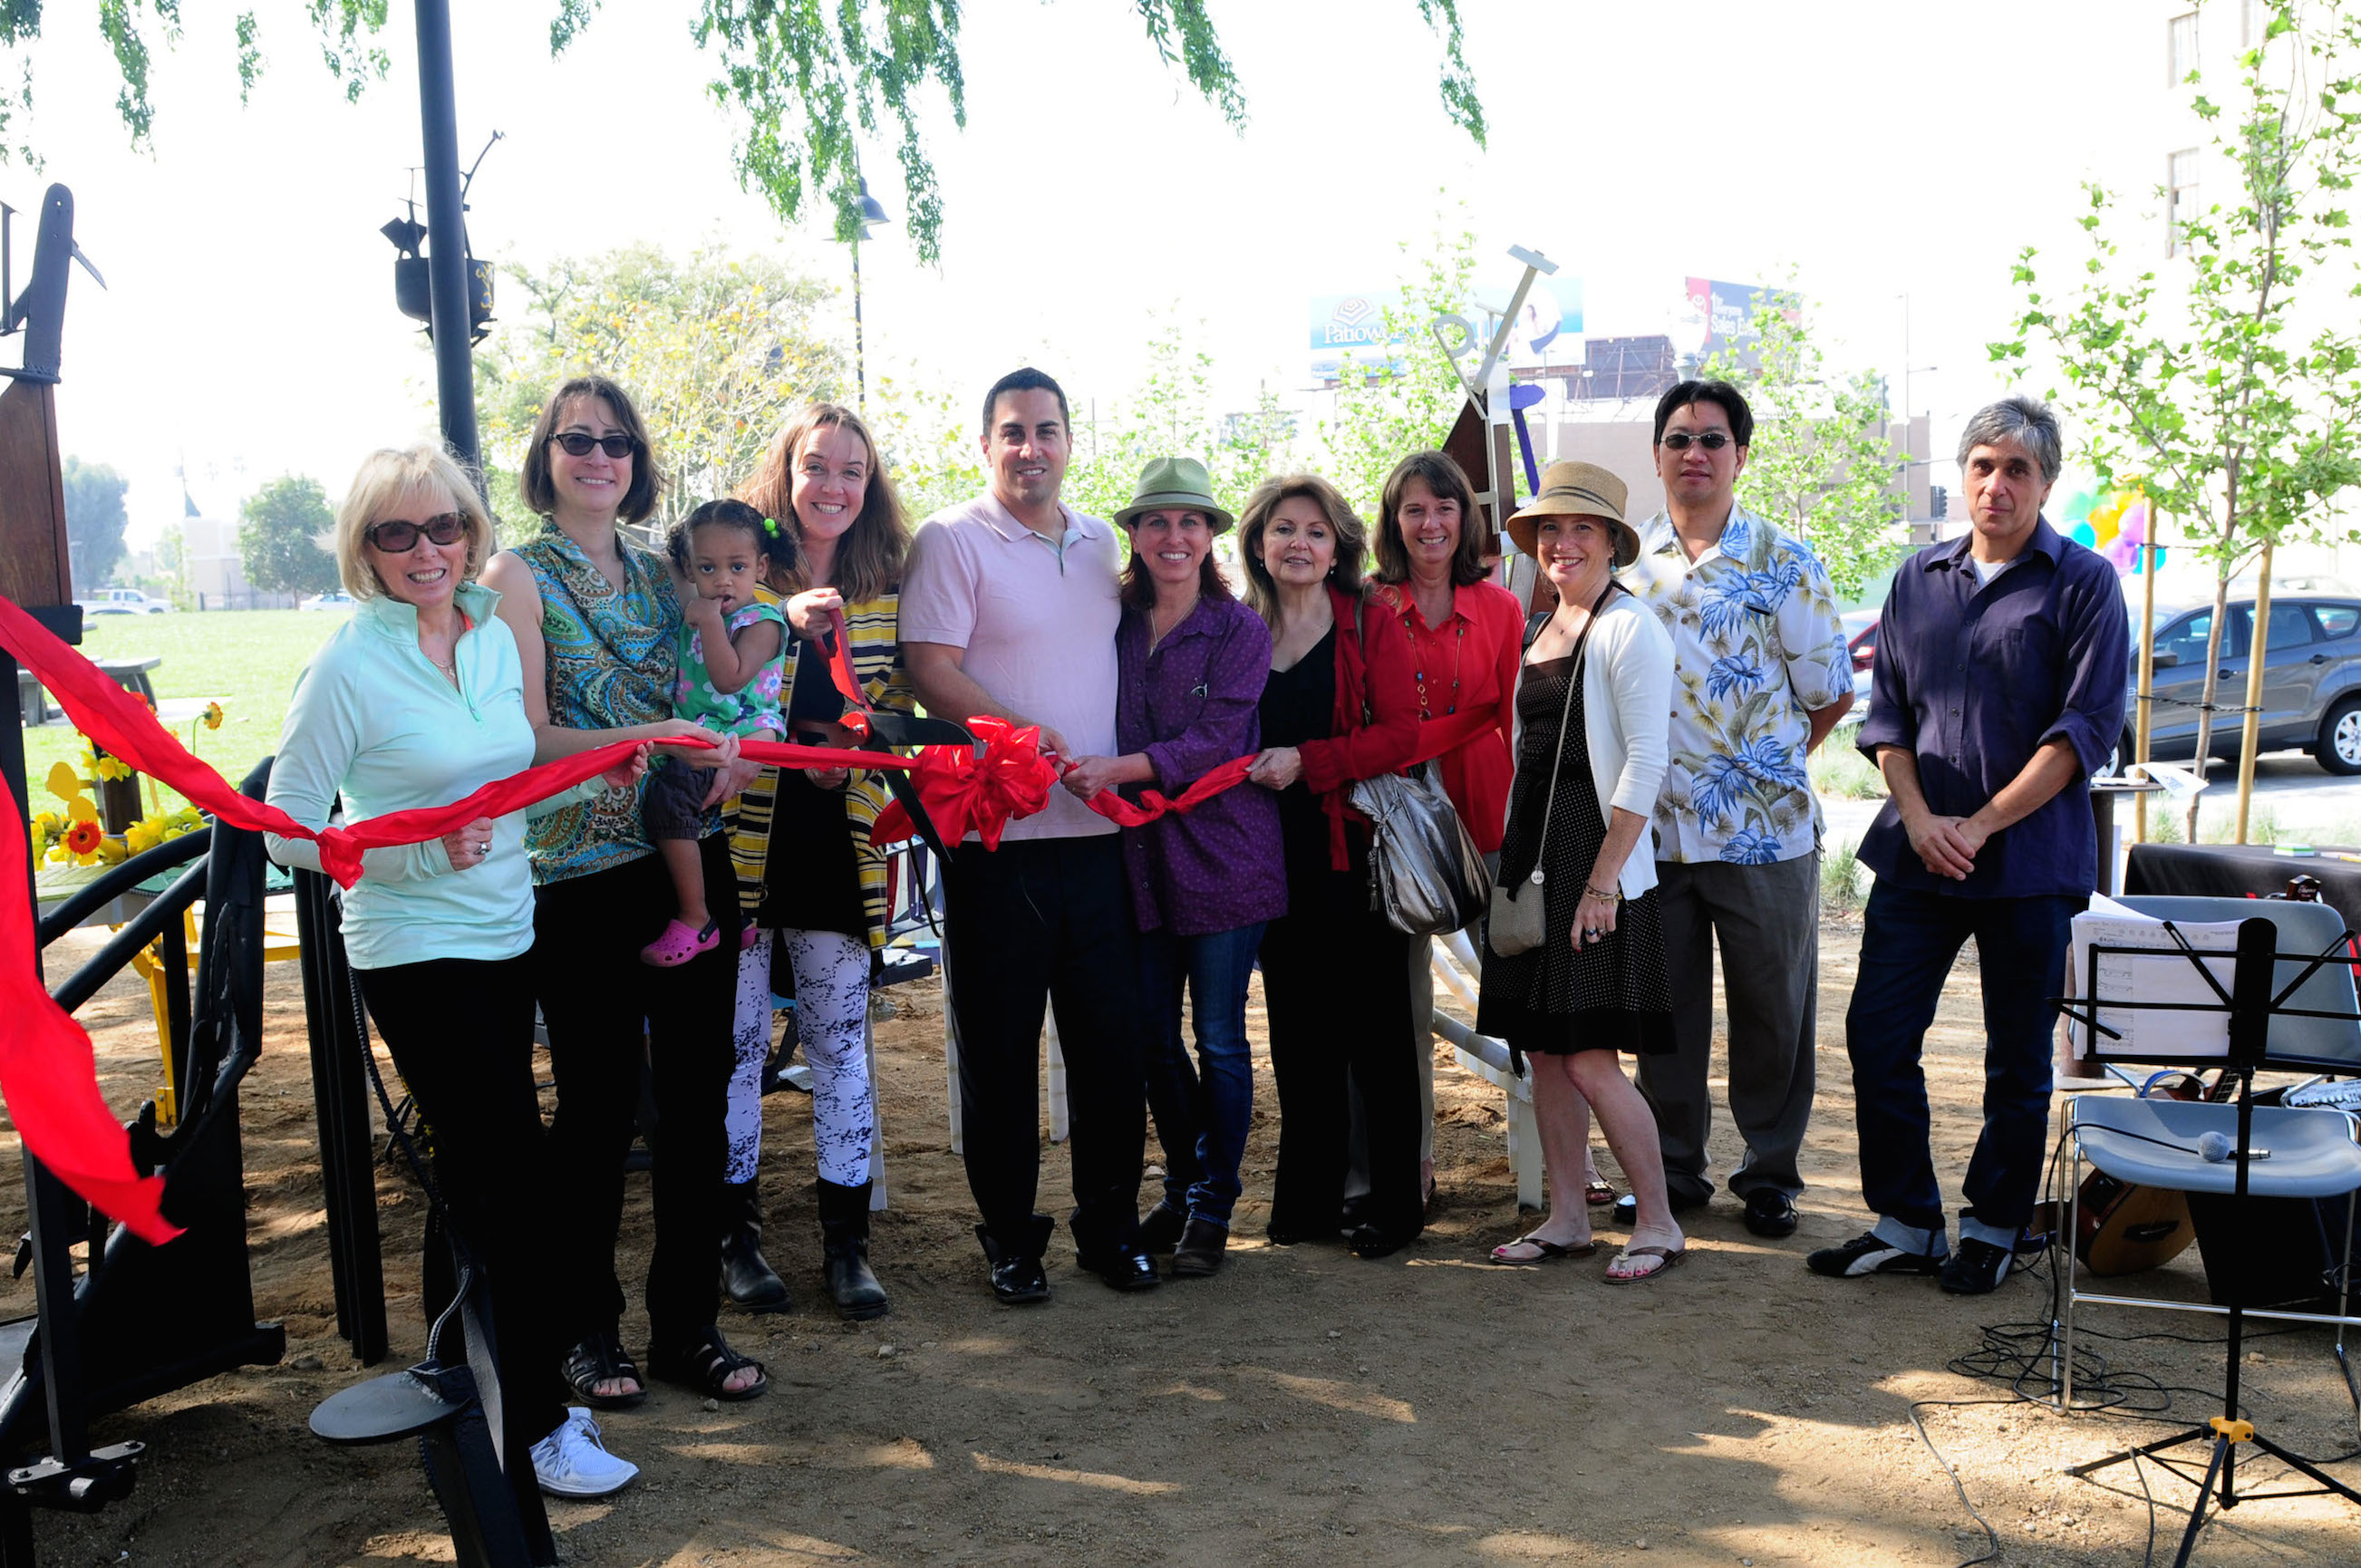 17-Bridget-Beck-Ribbon-Cutting-Vince-Gonzales-Photo